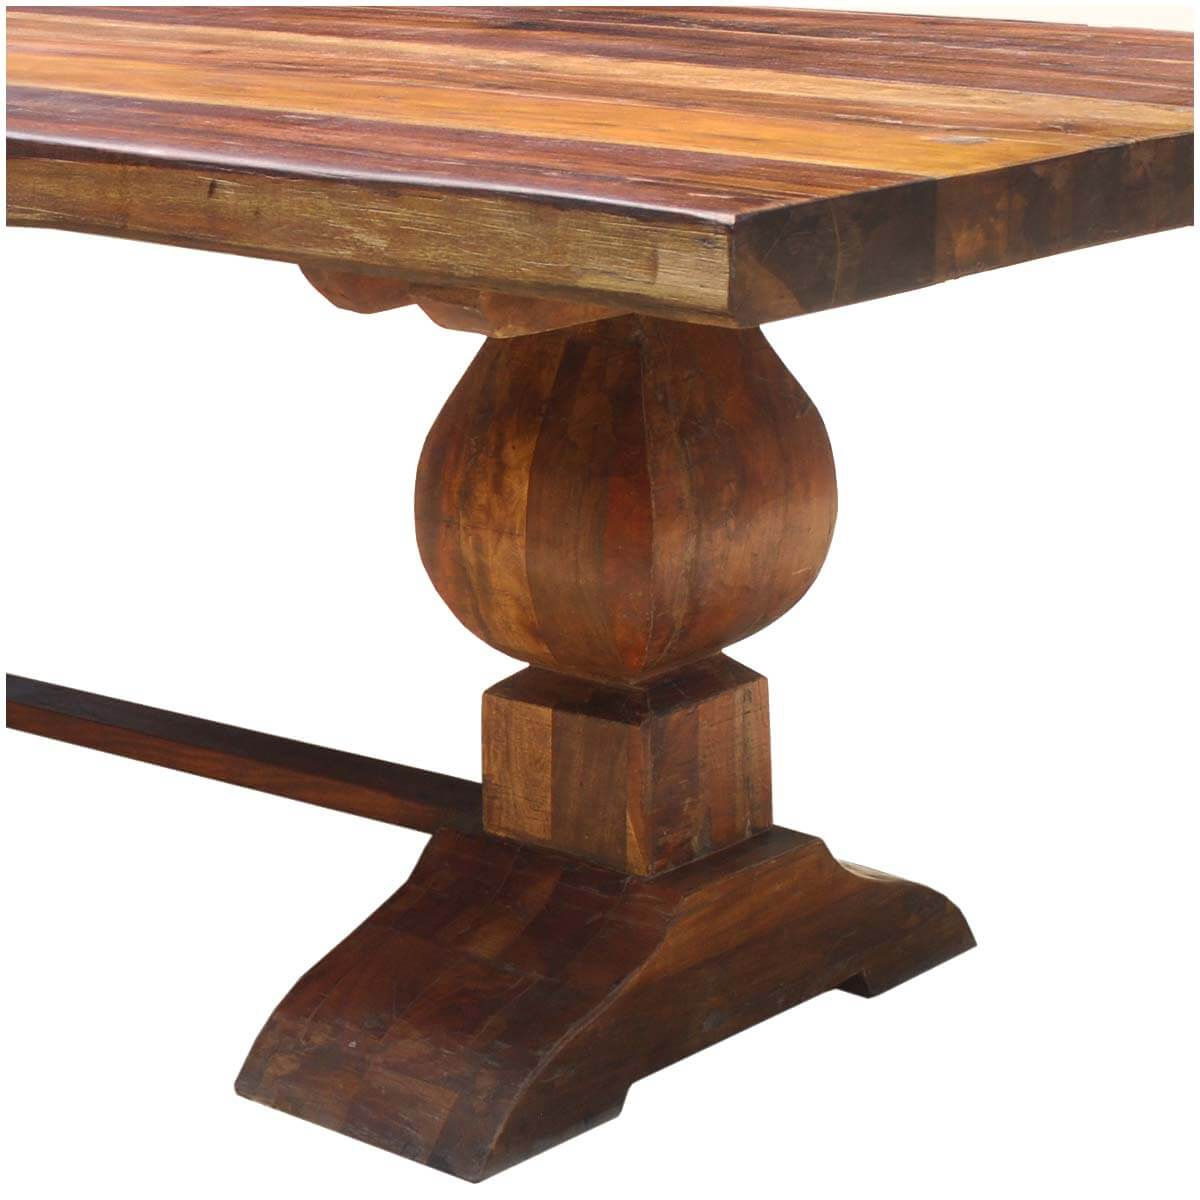 Trestle Dining Room Table: Large Rustic Reclaimed Wood Double Trestle Pedestal Dining